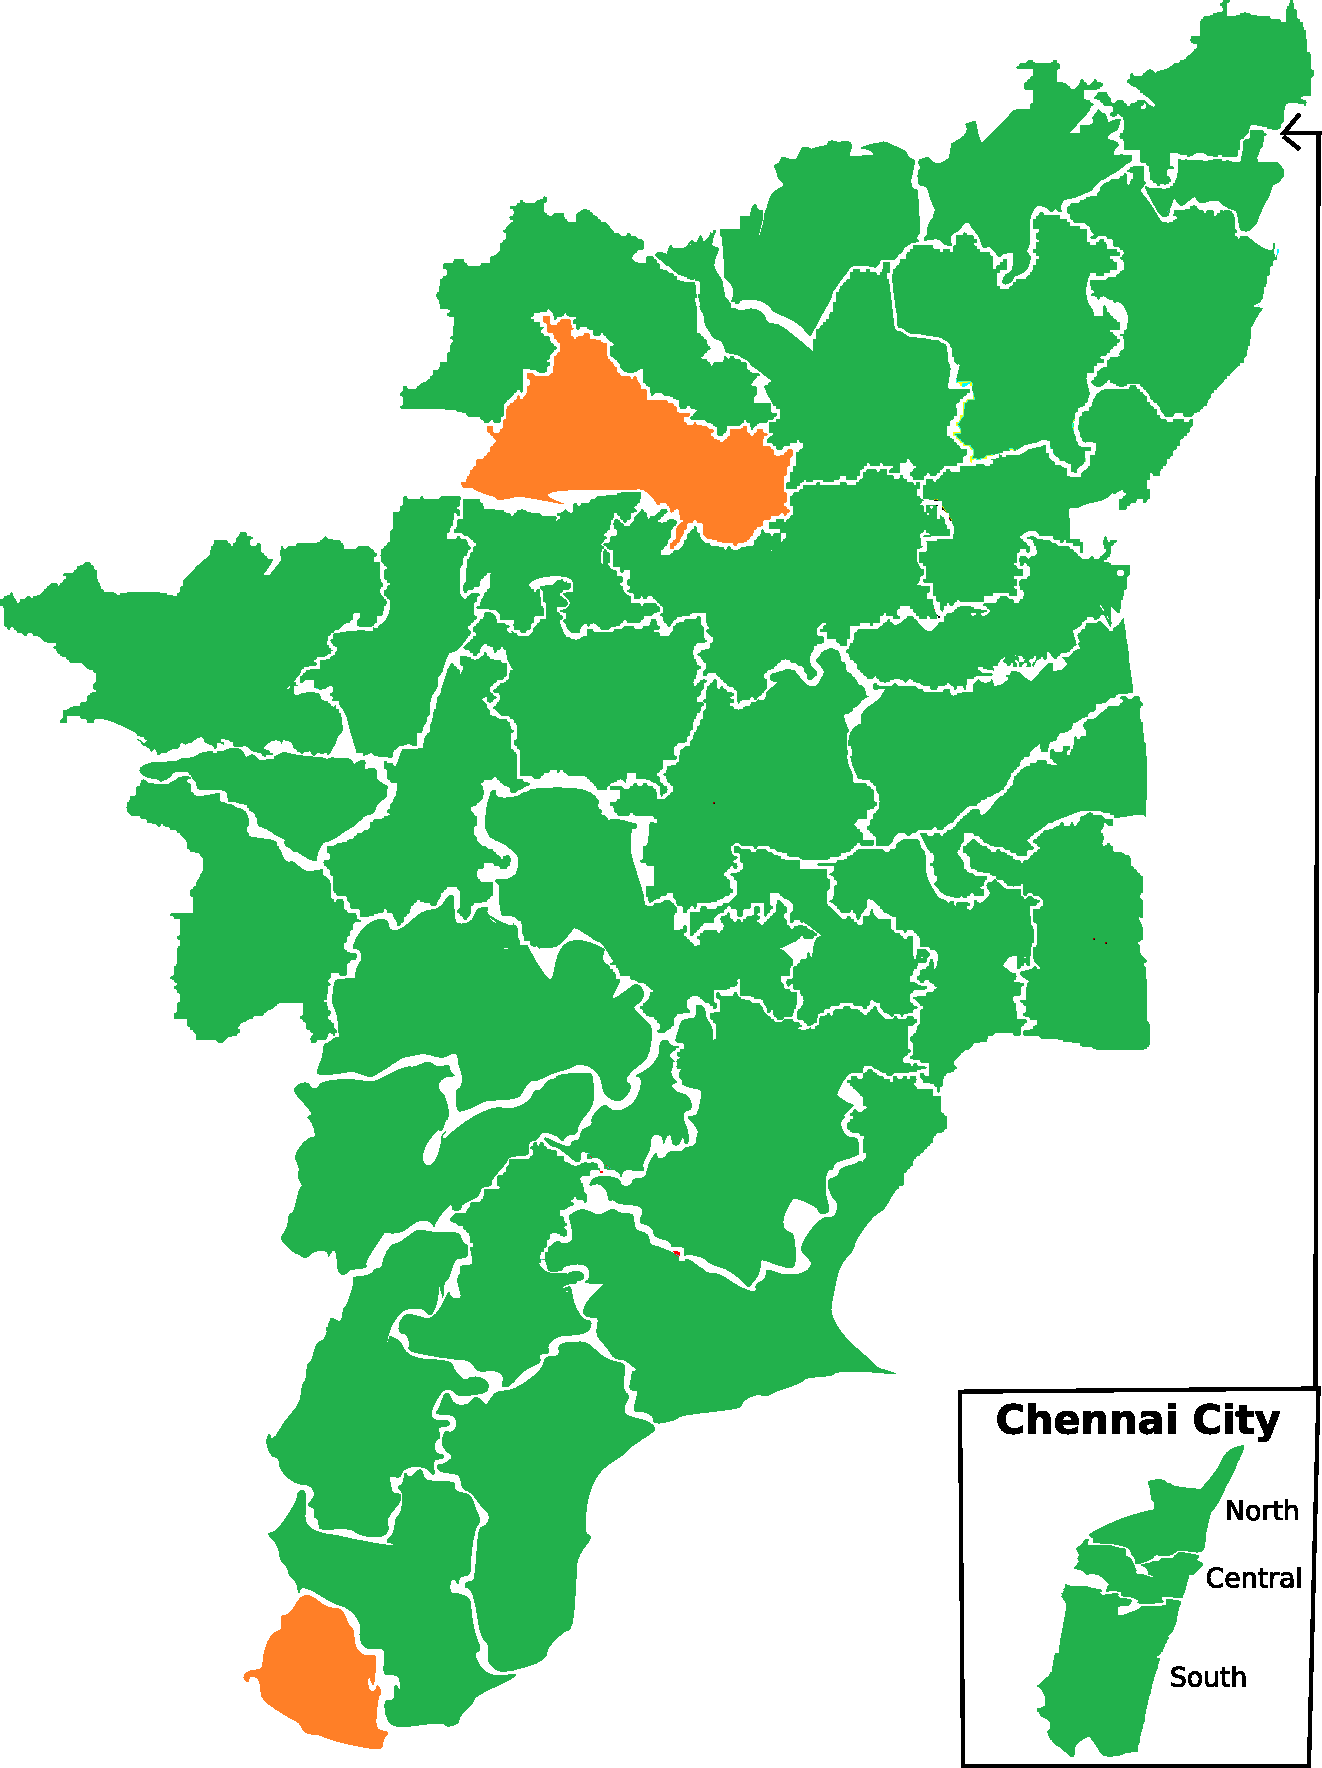 2014 Indian general election in Tamil Nadu - Wikipedia